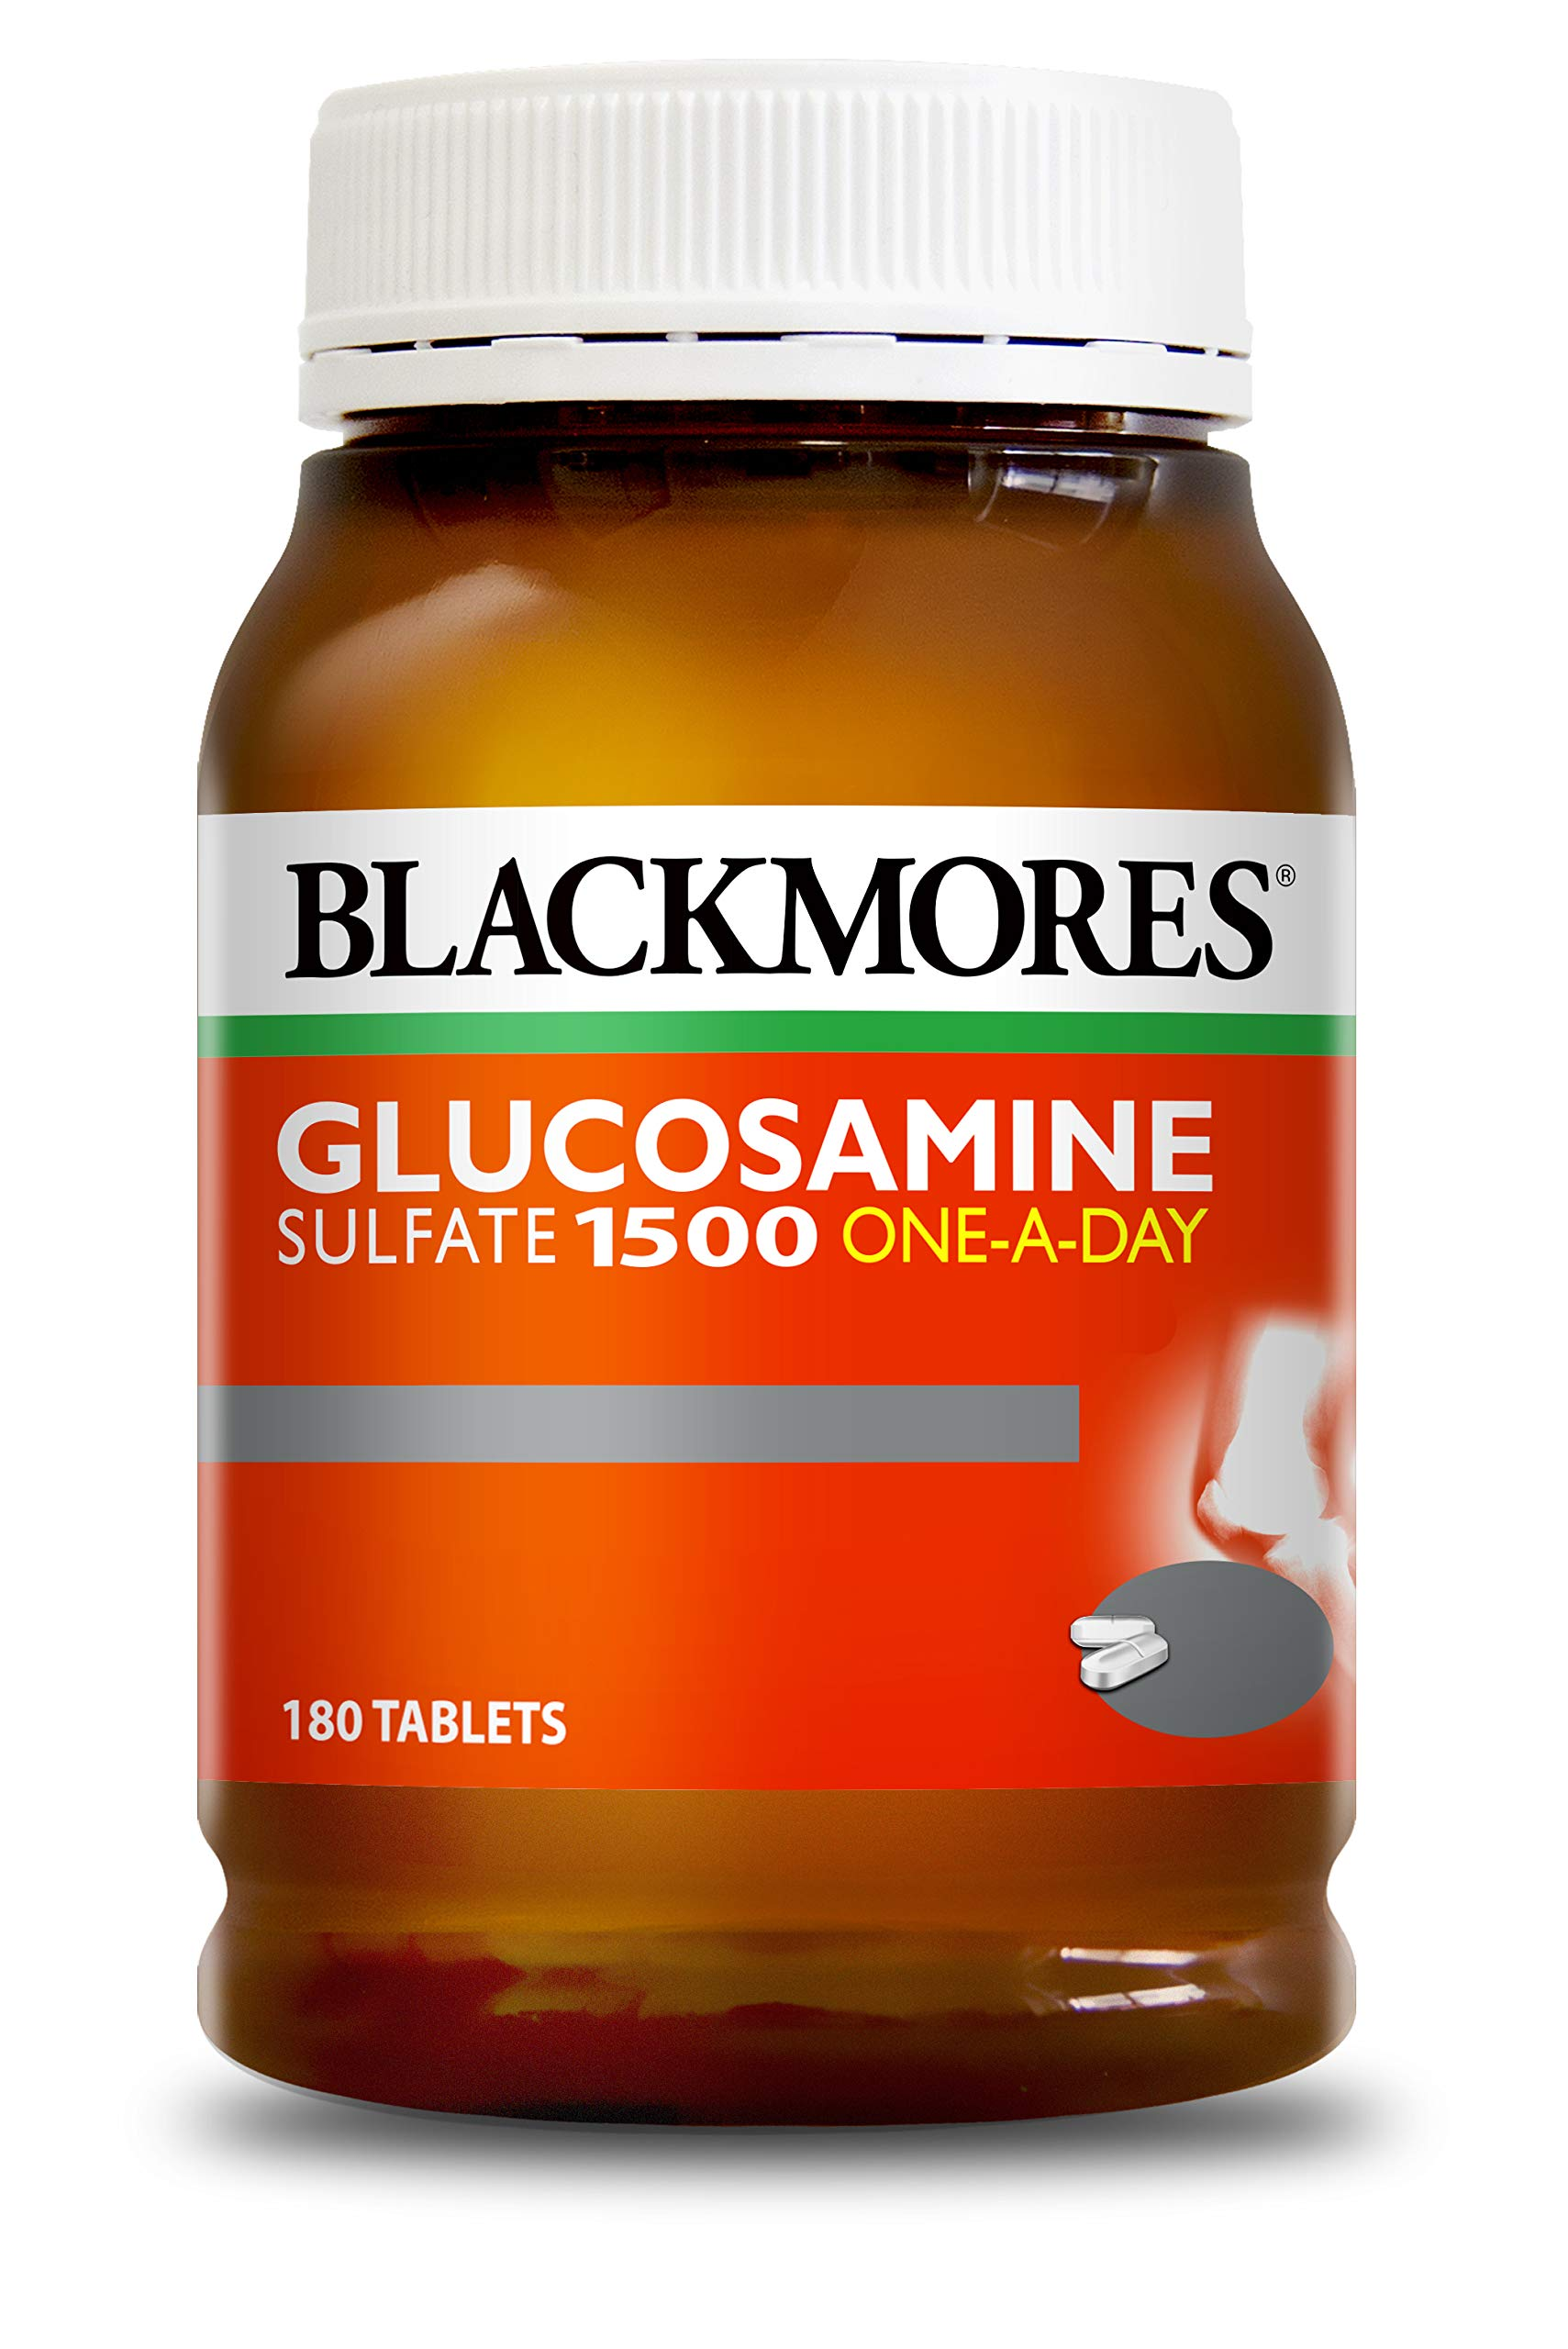 BLACKMORES BONES AND JOINTS Glucosamine 1500mg 180 Tablets by Blackmores LTD